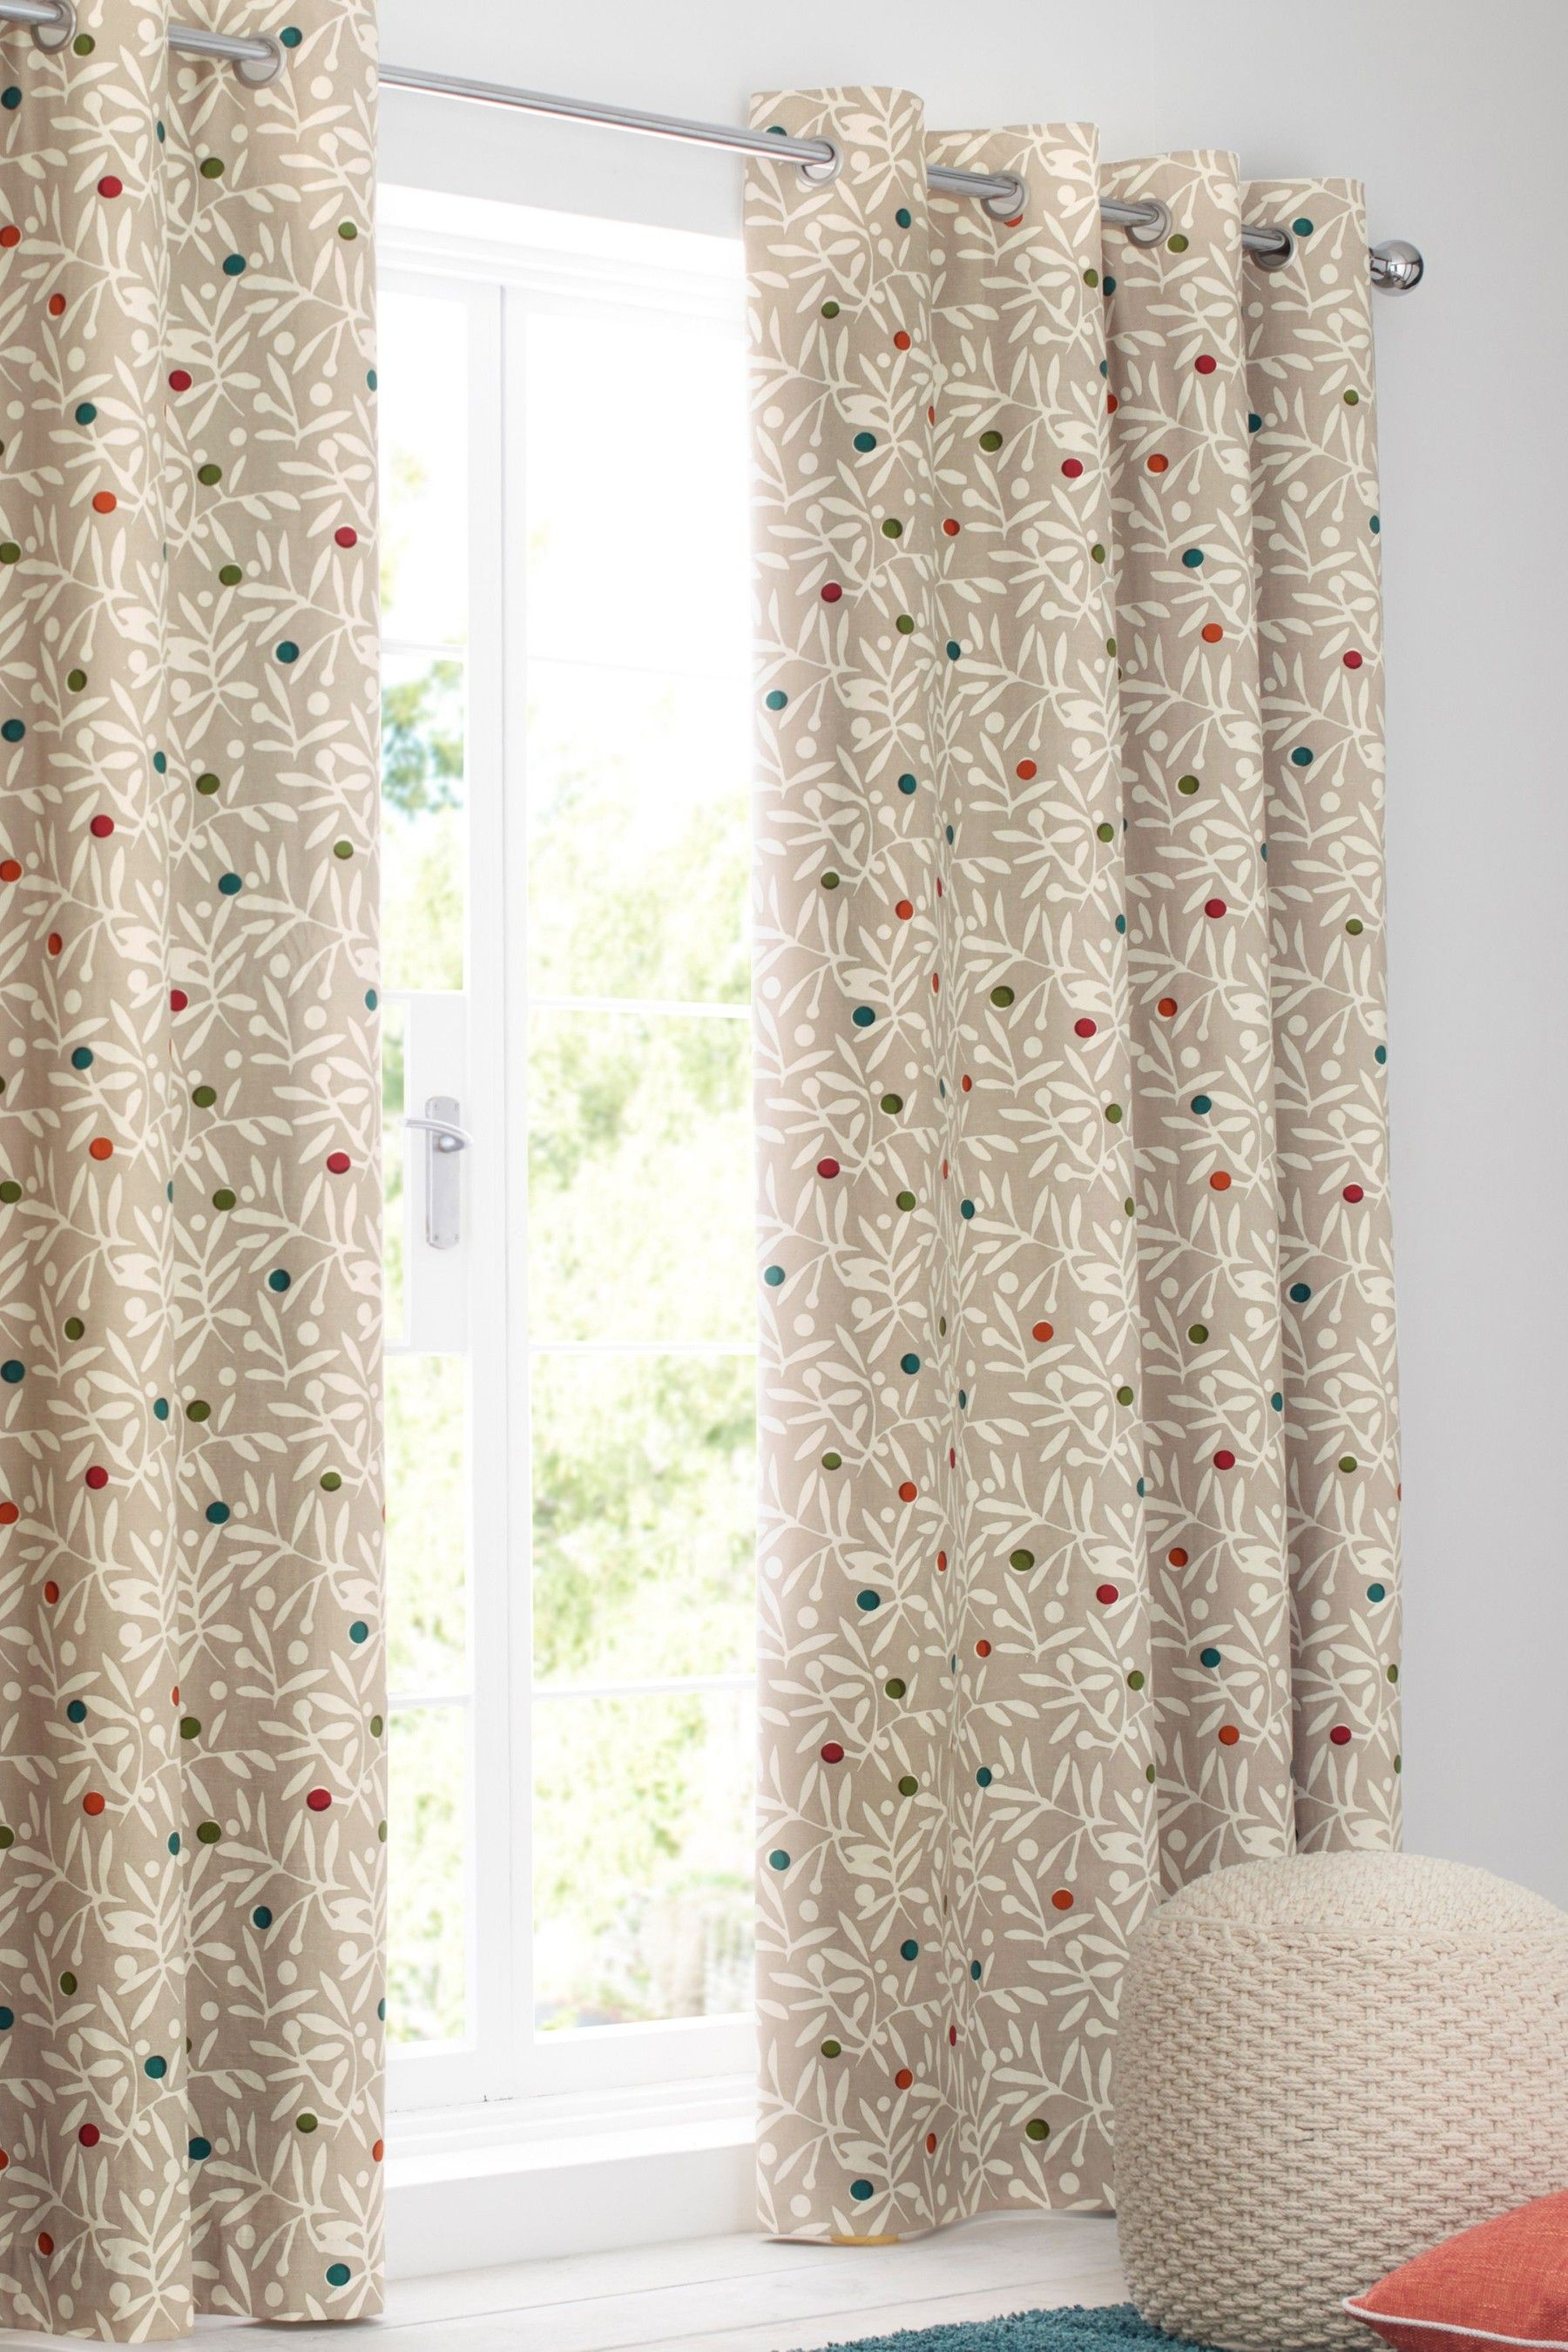 a9f05fb0a6 Next Berry Sprig Print Eyelet Curtains - Natural | Products ...